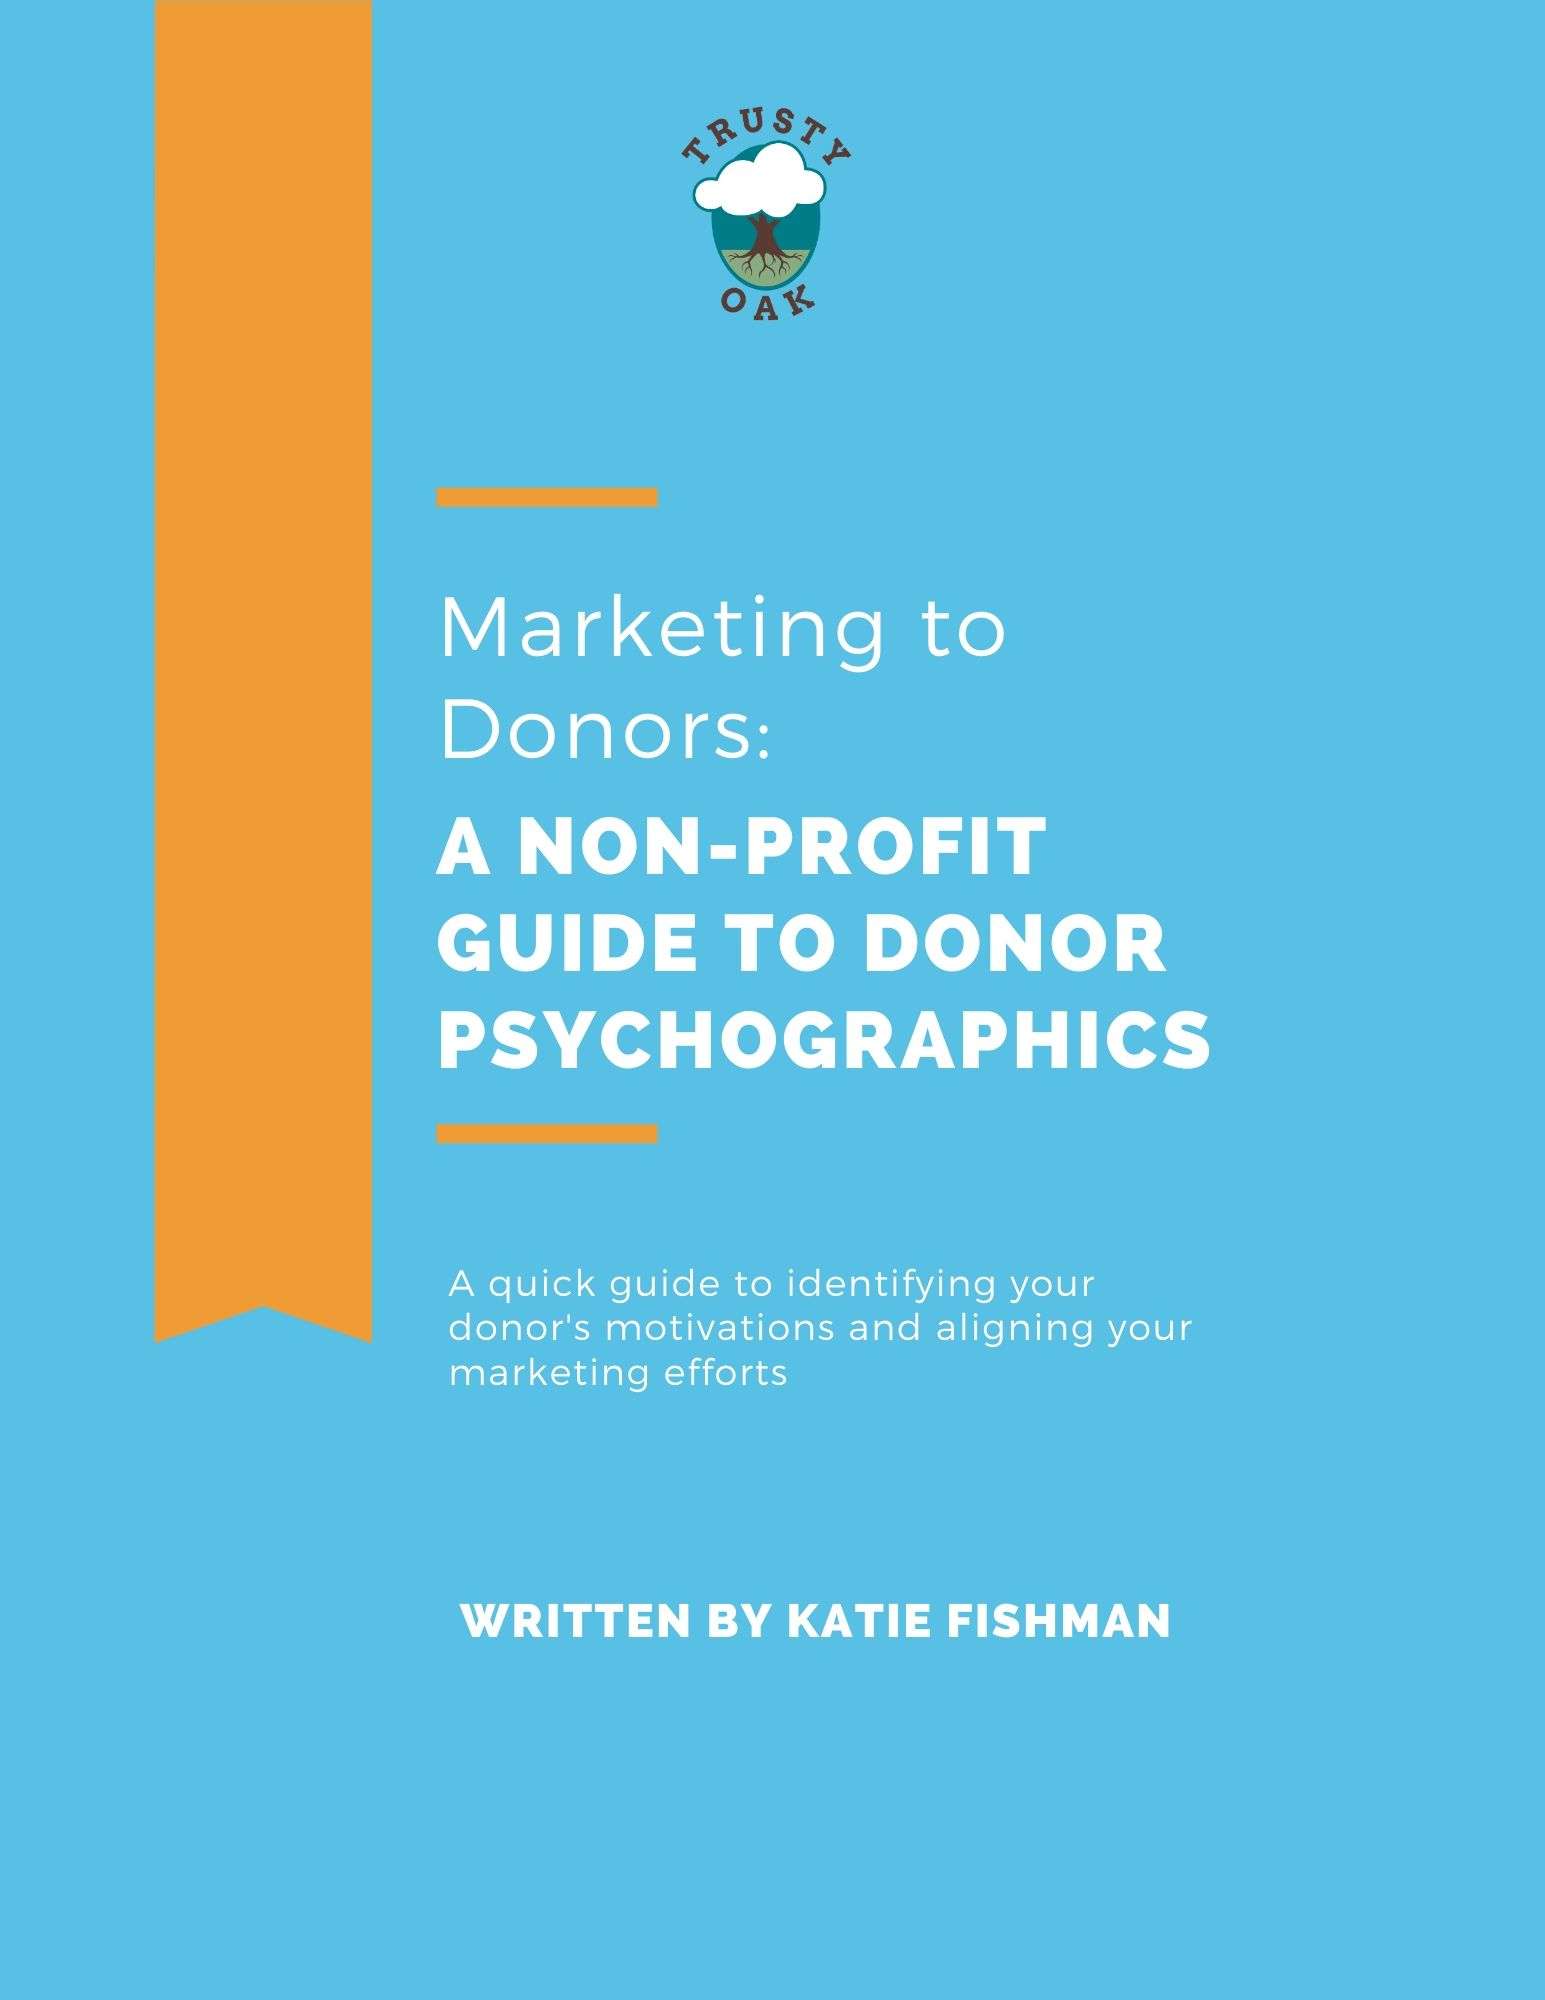 Marketing to Donors